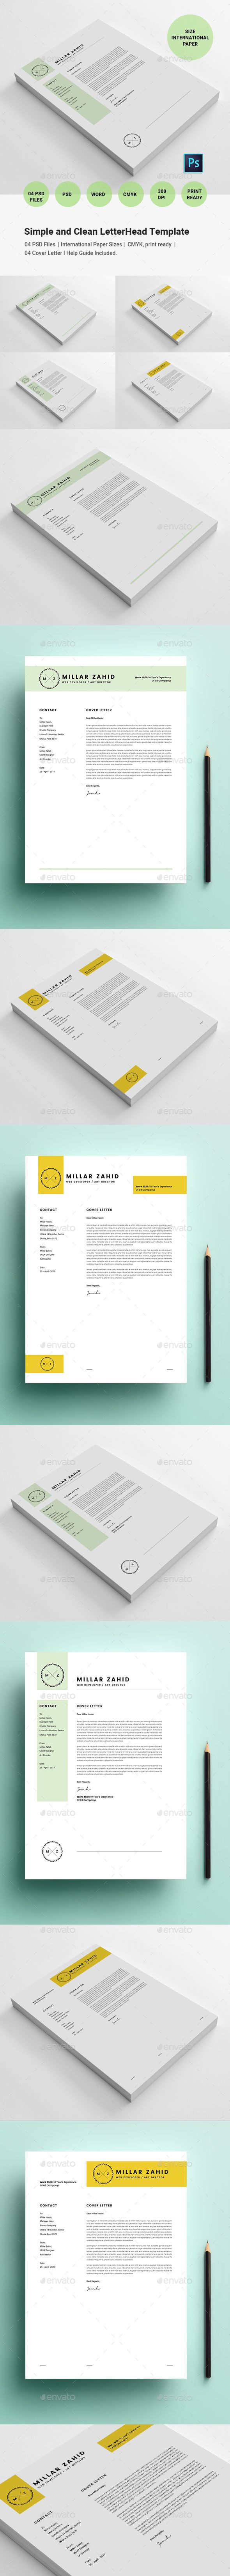 letter format on letterhead%0A Simple and Clean LetterHead Template   Letterhead template  Stationery  printing and Print templates